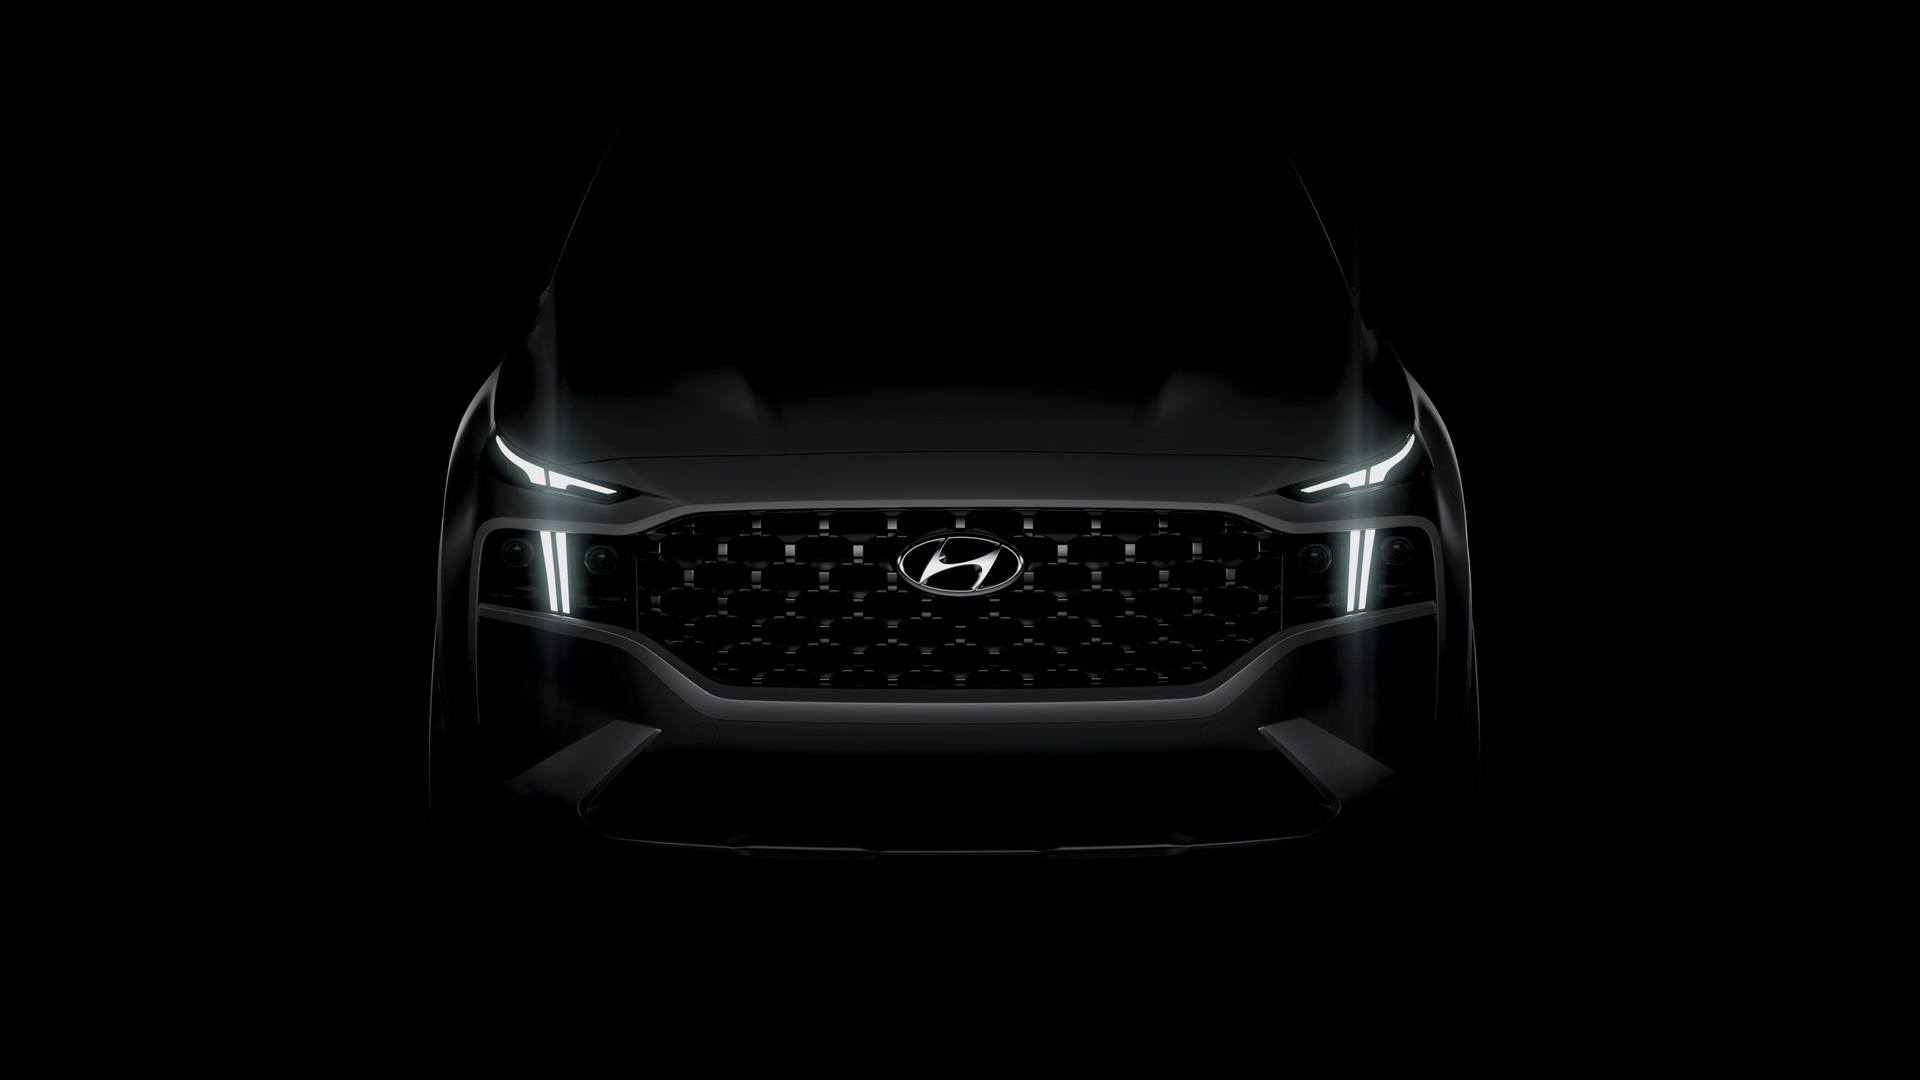 Hyundai Teases New Santa Fe SUV: PHEV Option Coming